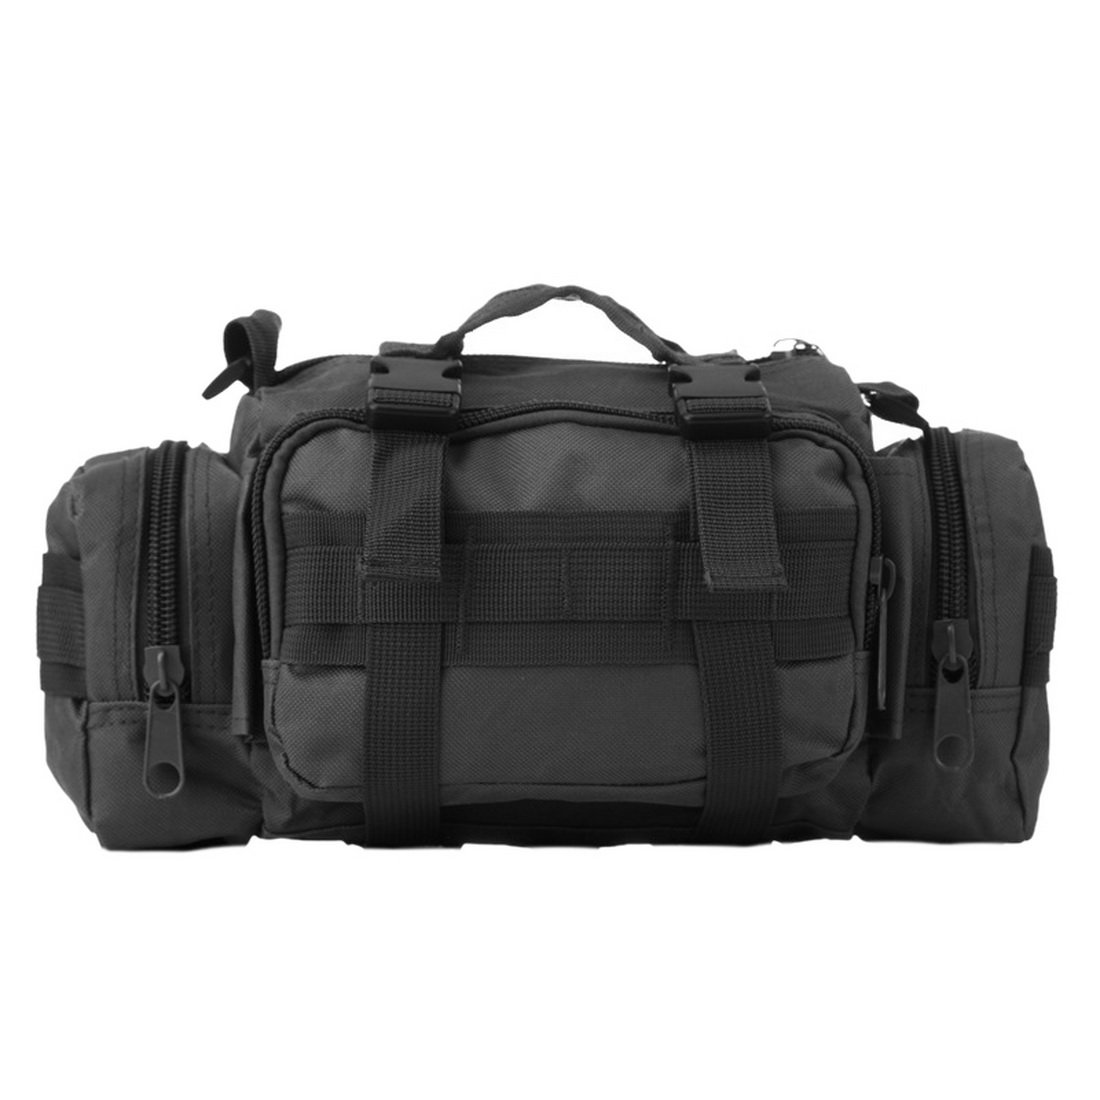 Amazon.com: Aelegant Outdoor Military Tactical Mochilas Molle Hiking Camping Pouch Camera Bag: Clothing